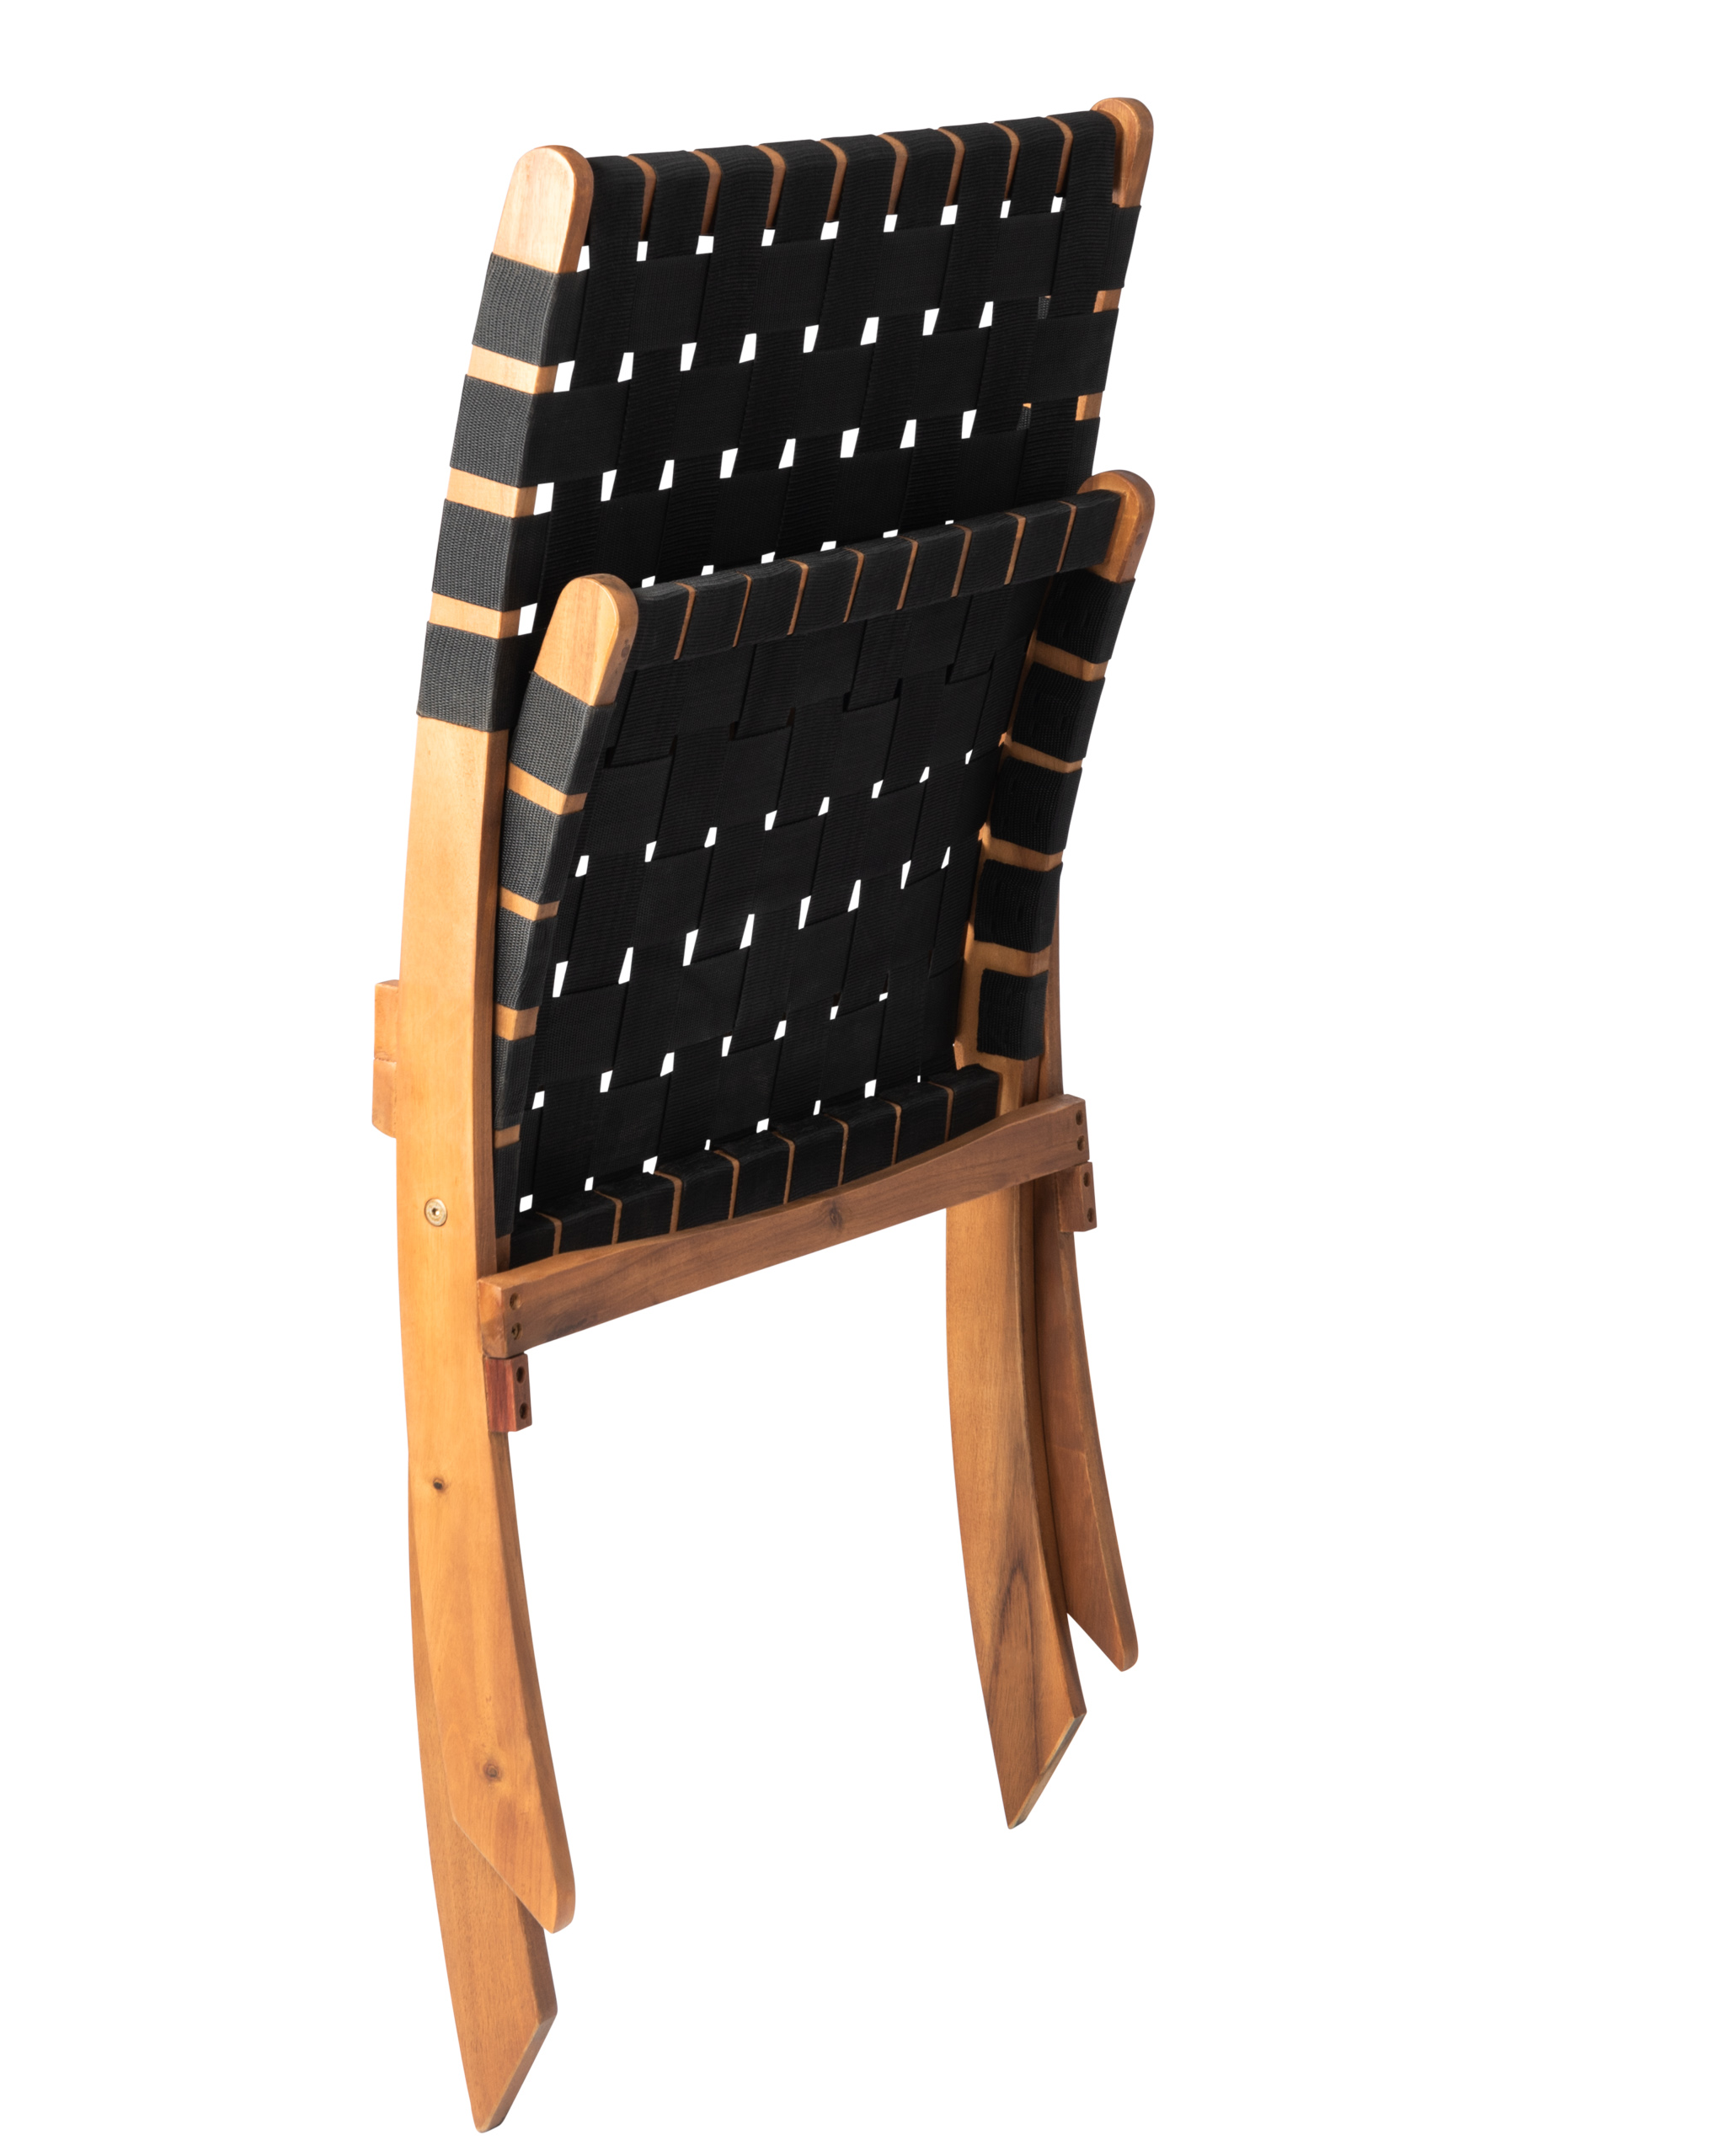 Sava Folding Outdoor Chair Well Traveled Living